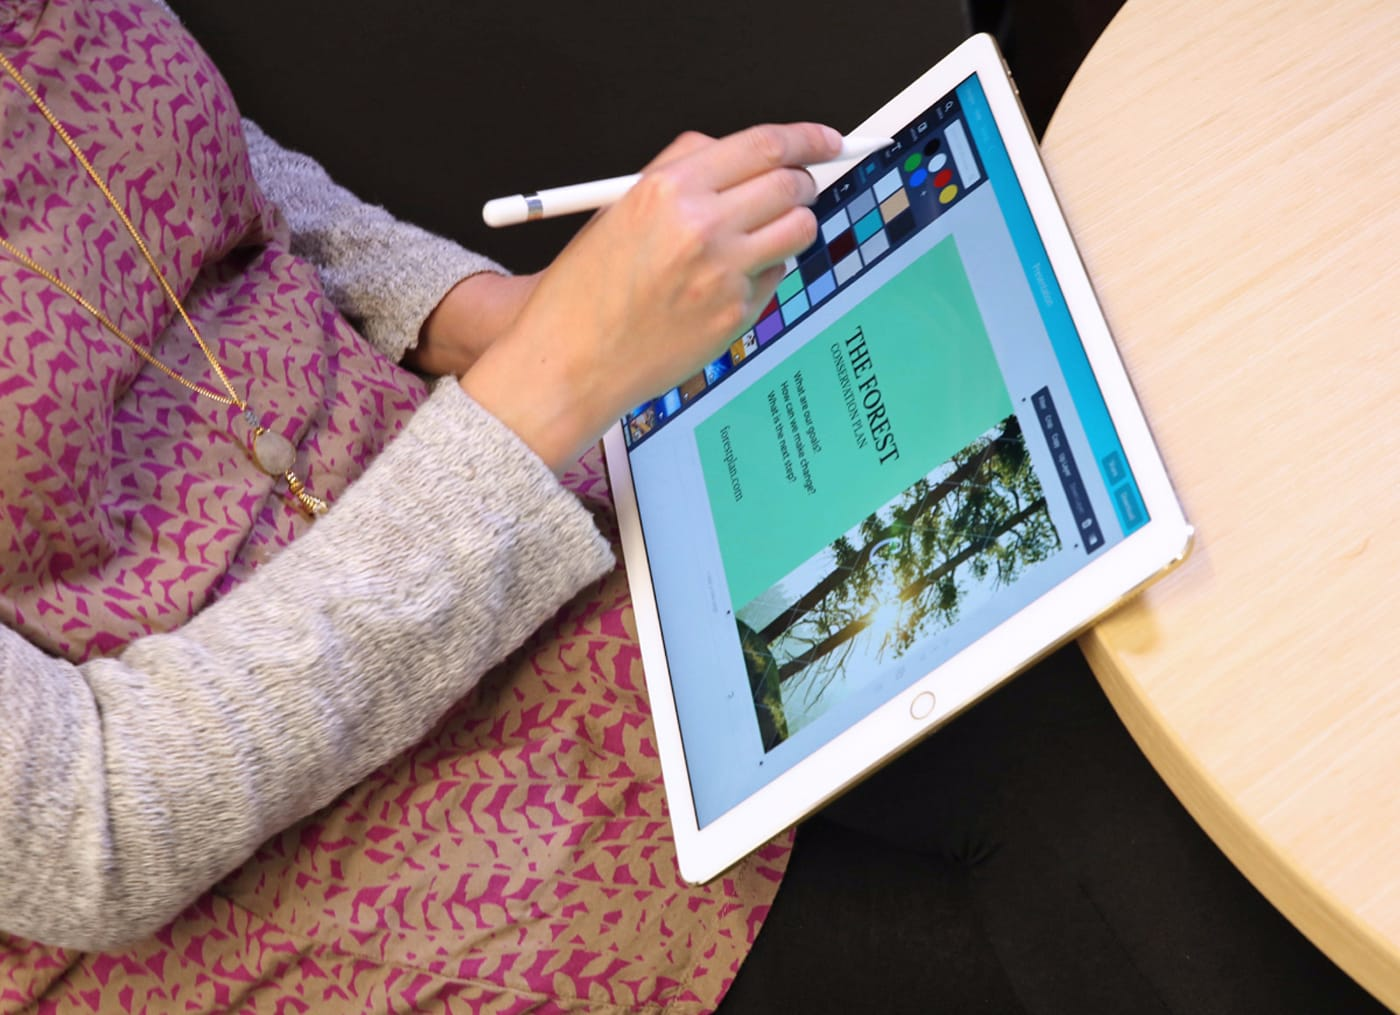 Apple is reportedly launching a 9.7-inch iPad Pro in March